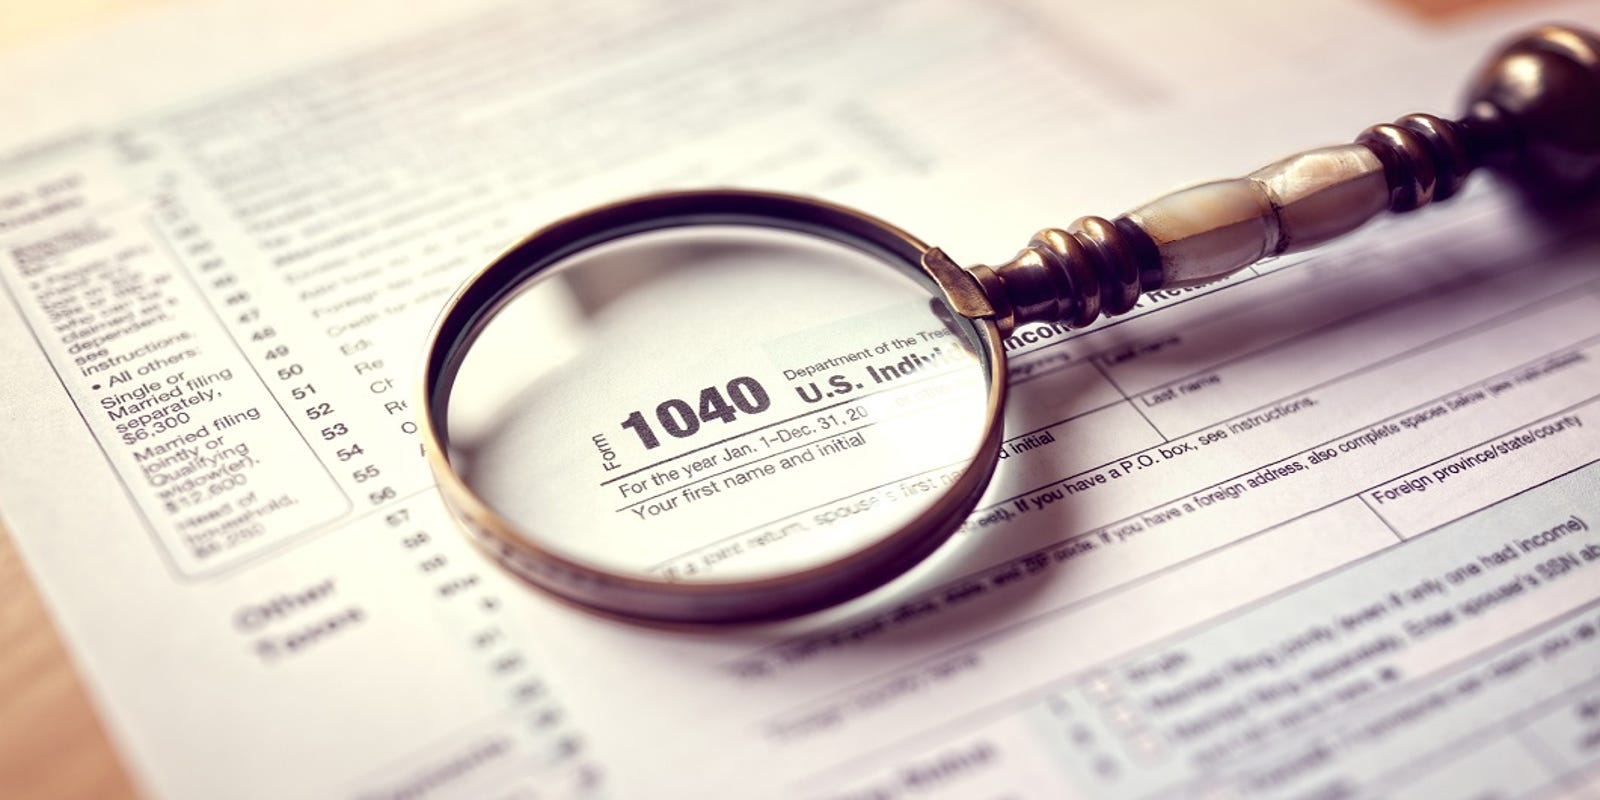 Tax refund fraud: IRS crackdown may ensnare legit taxpayers